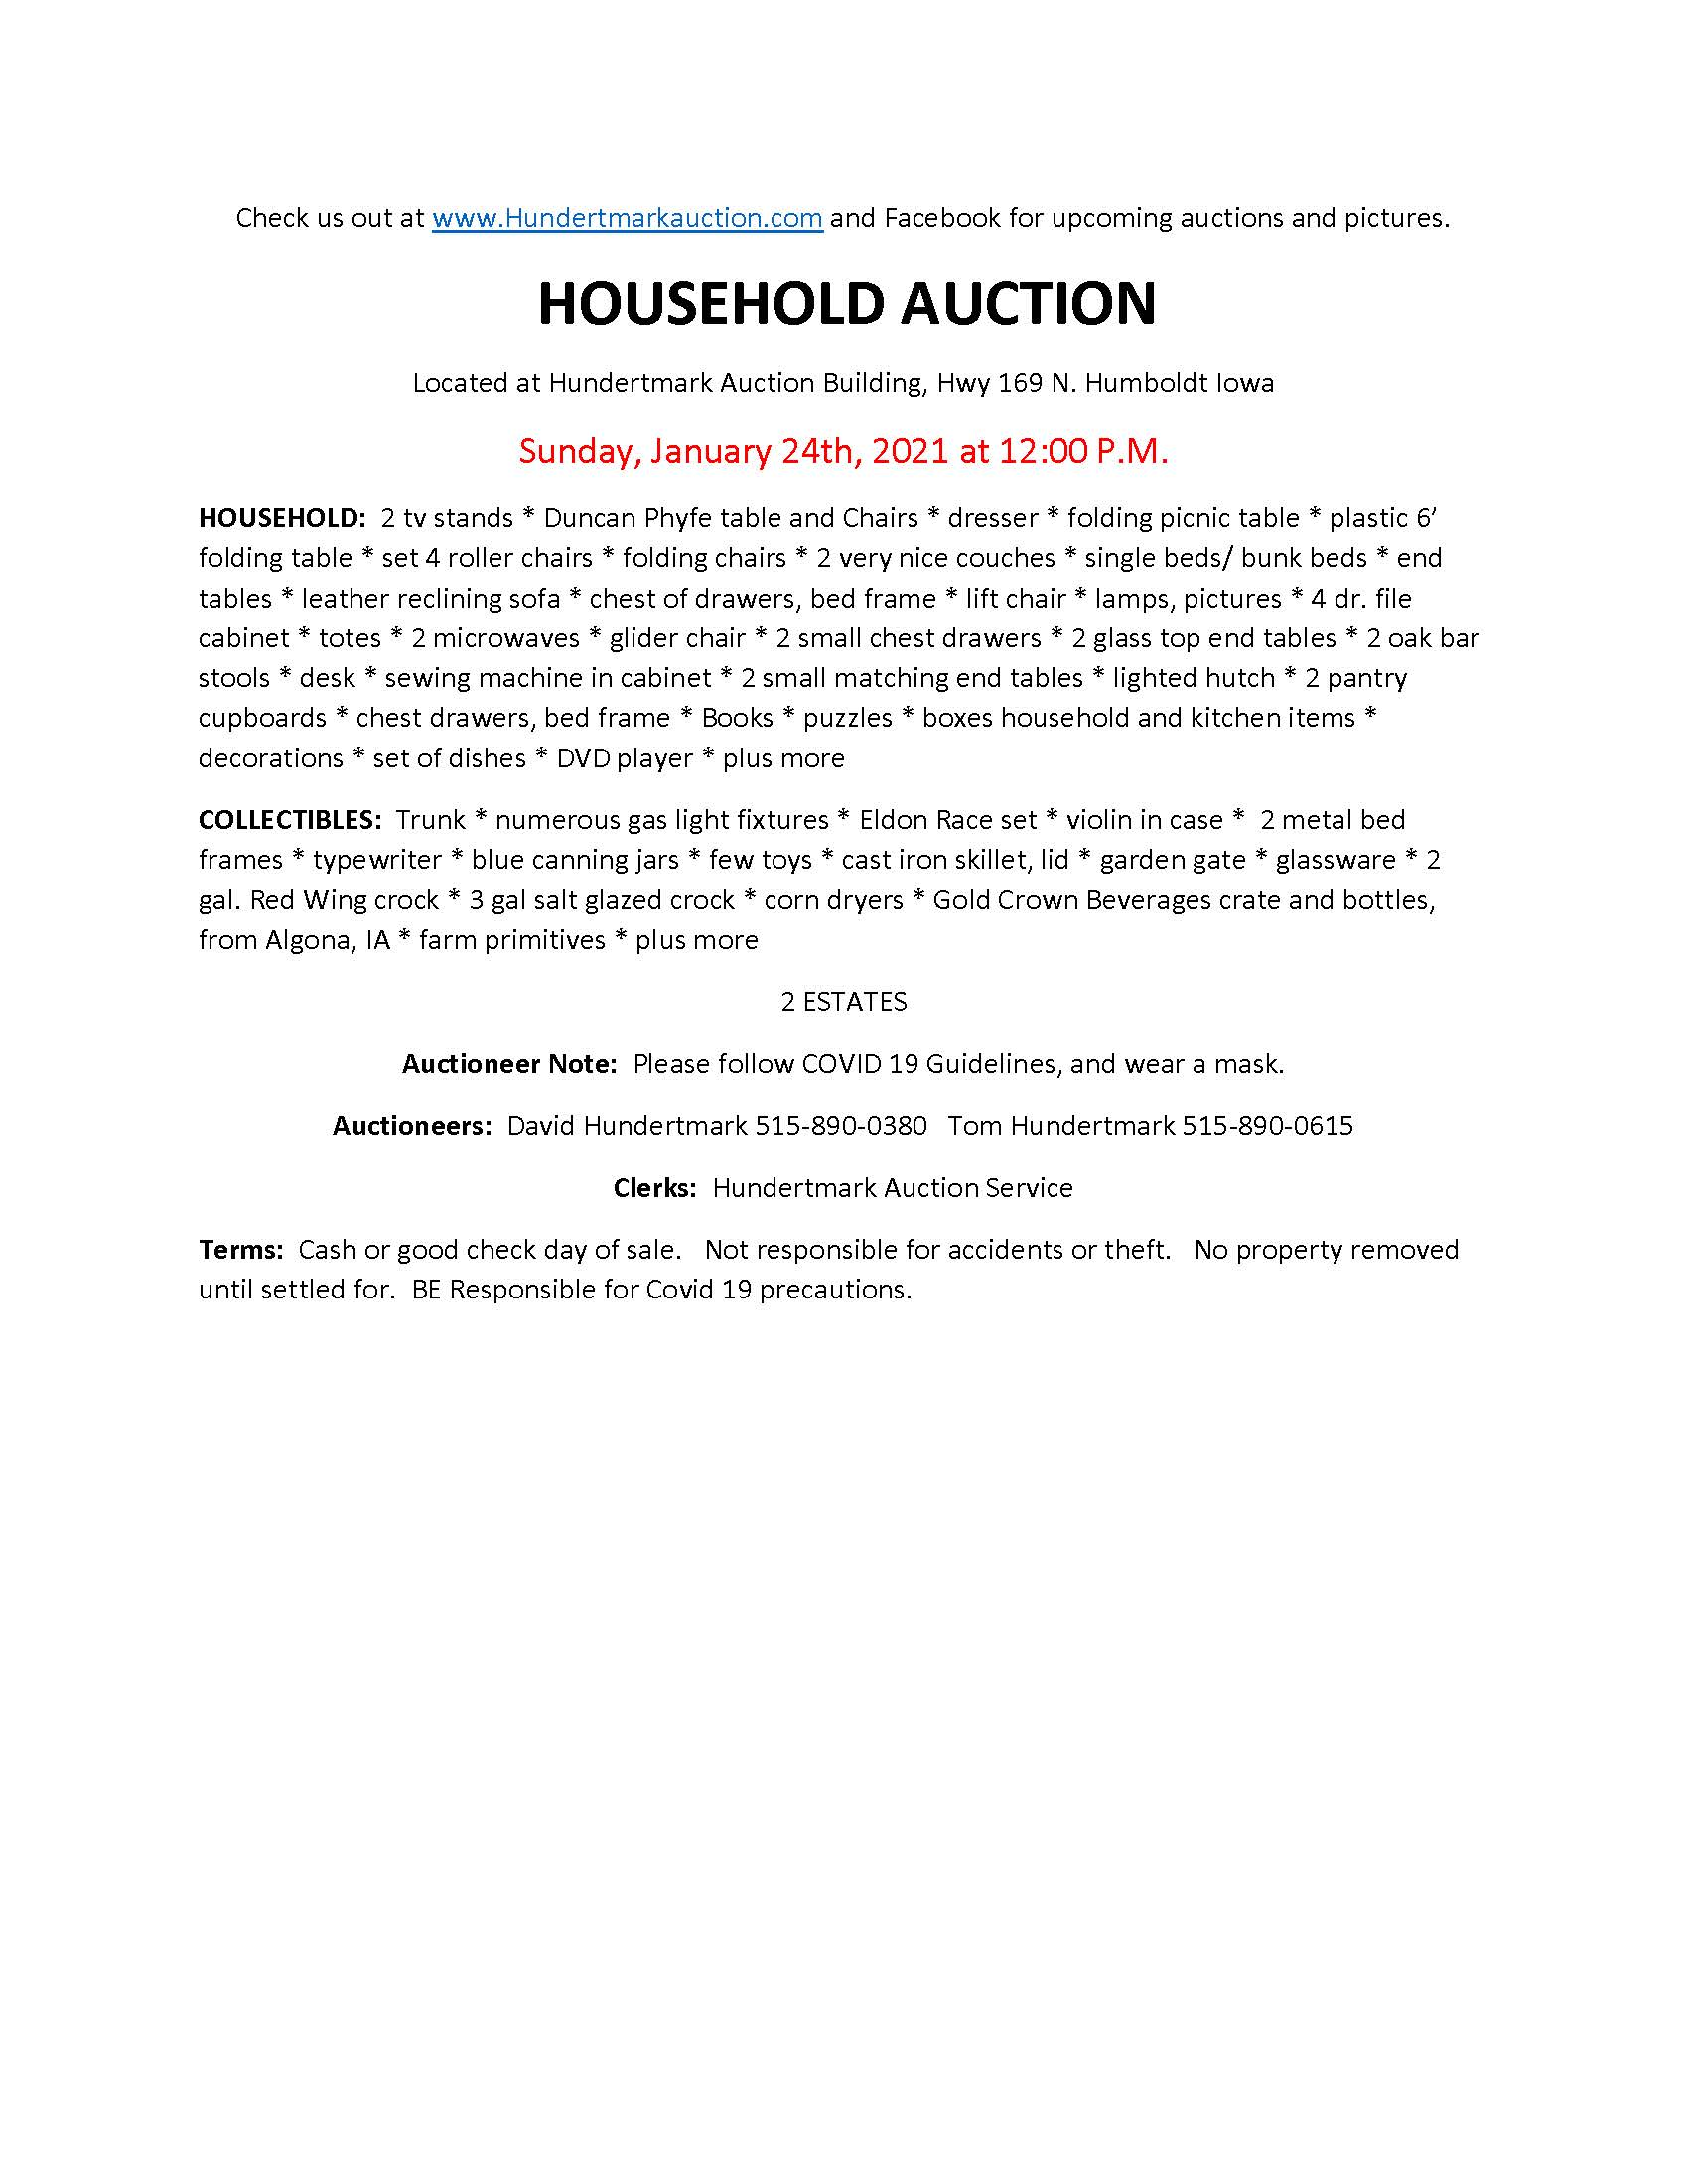 Household Auction